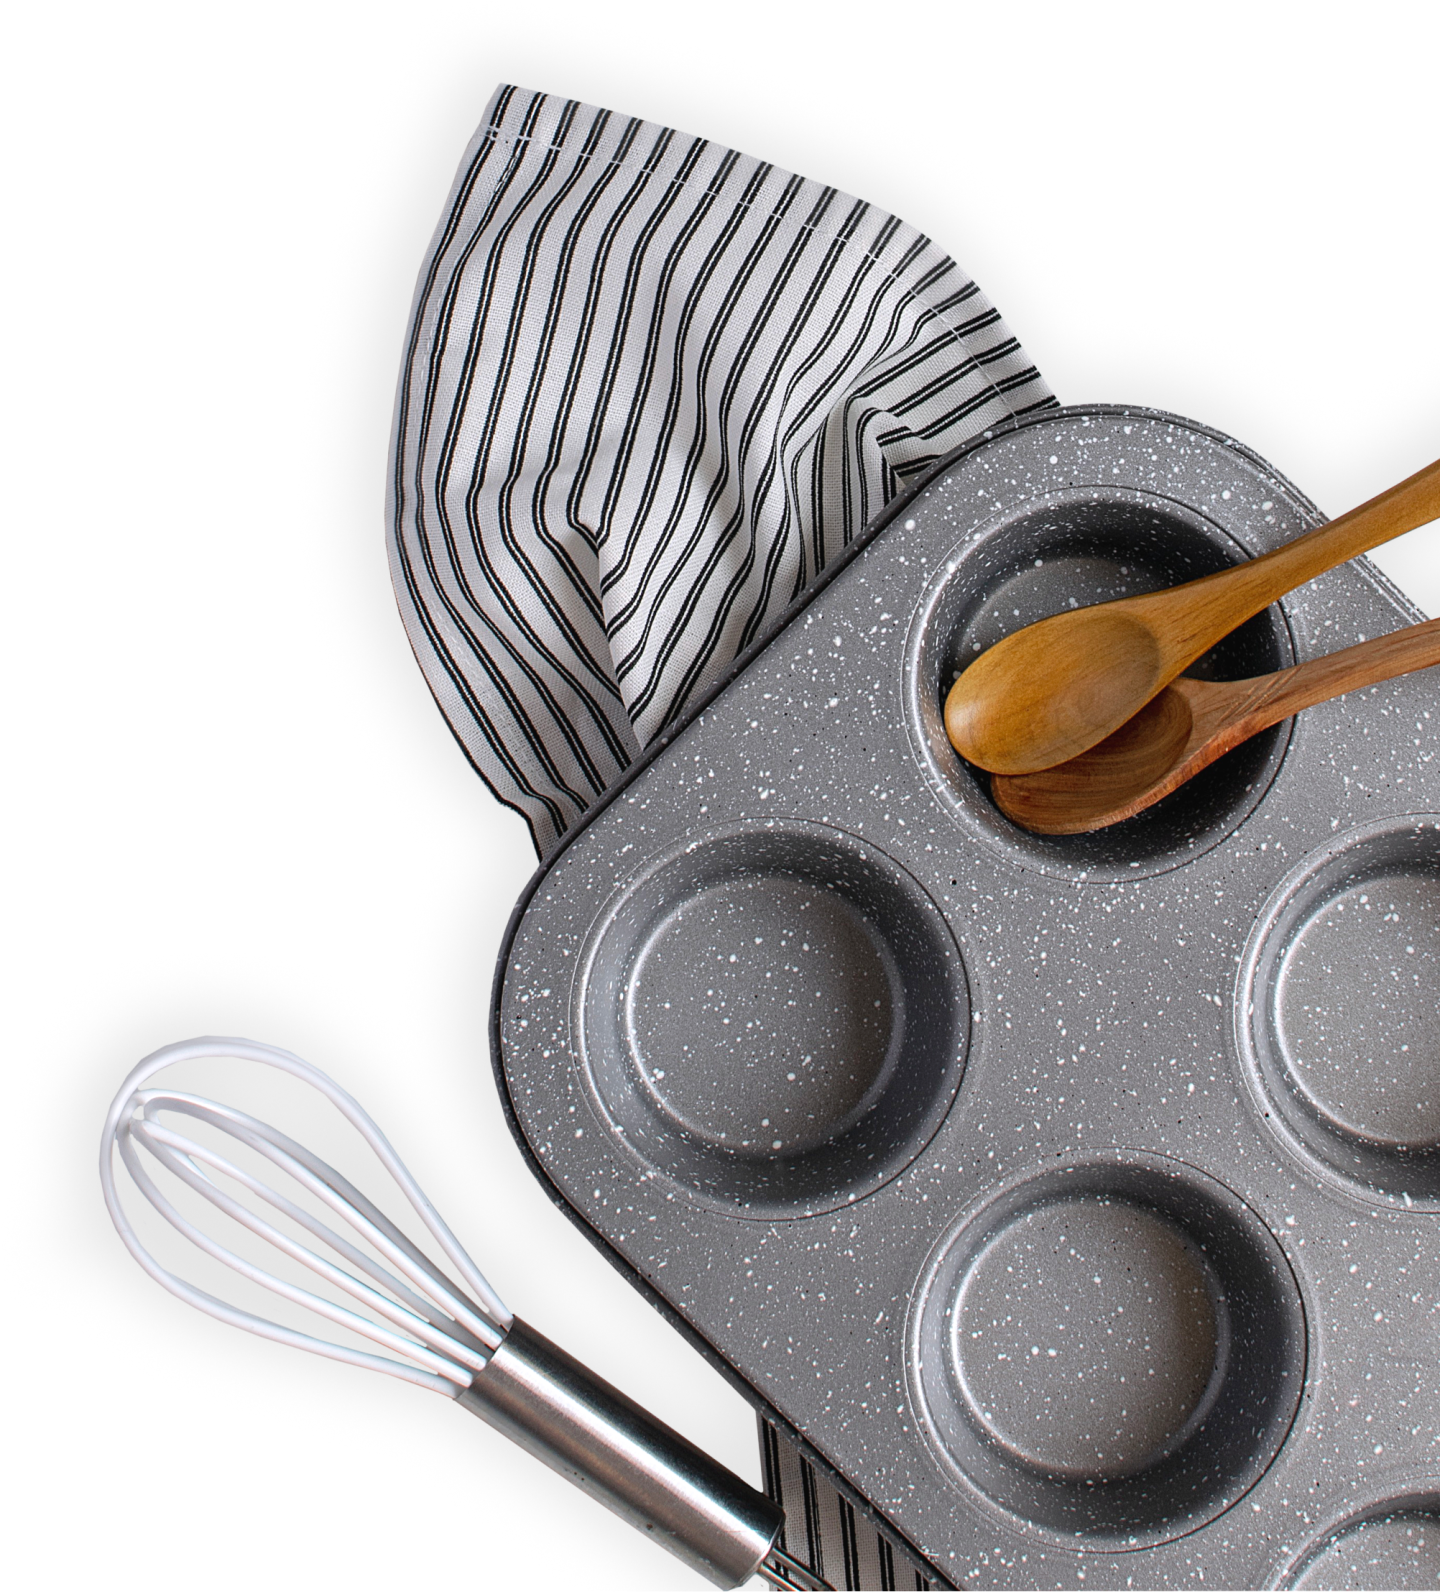 Baking pan, whisk, and two wooden spoons laying on top of a dish towel._FR